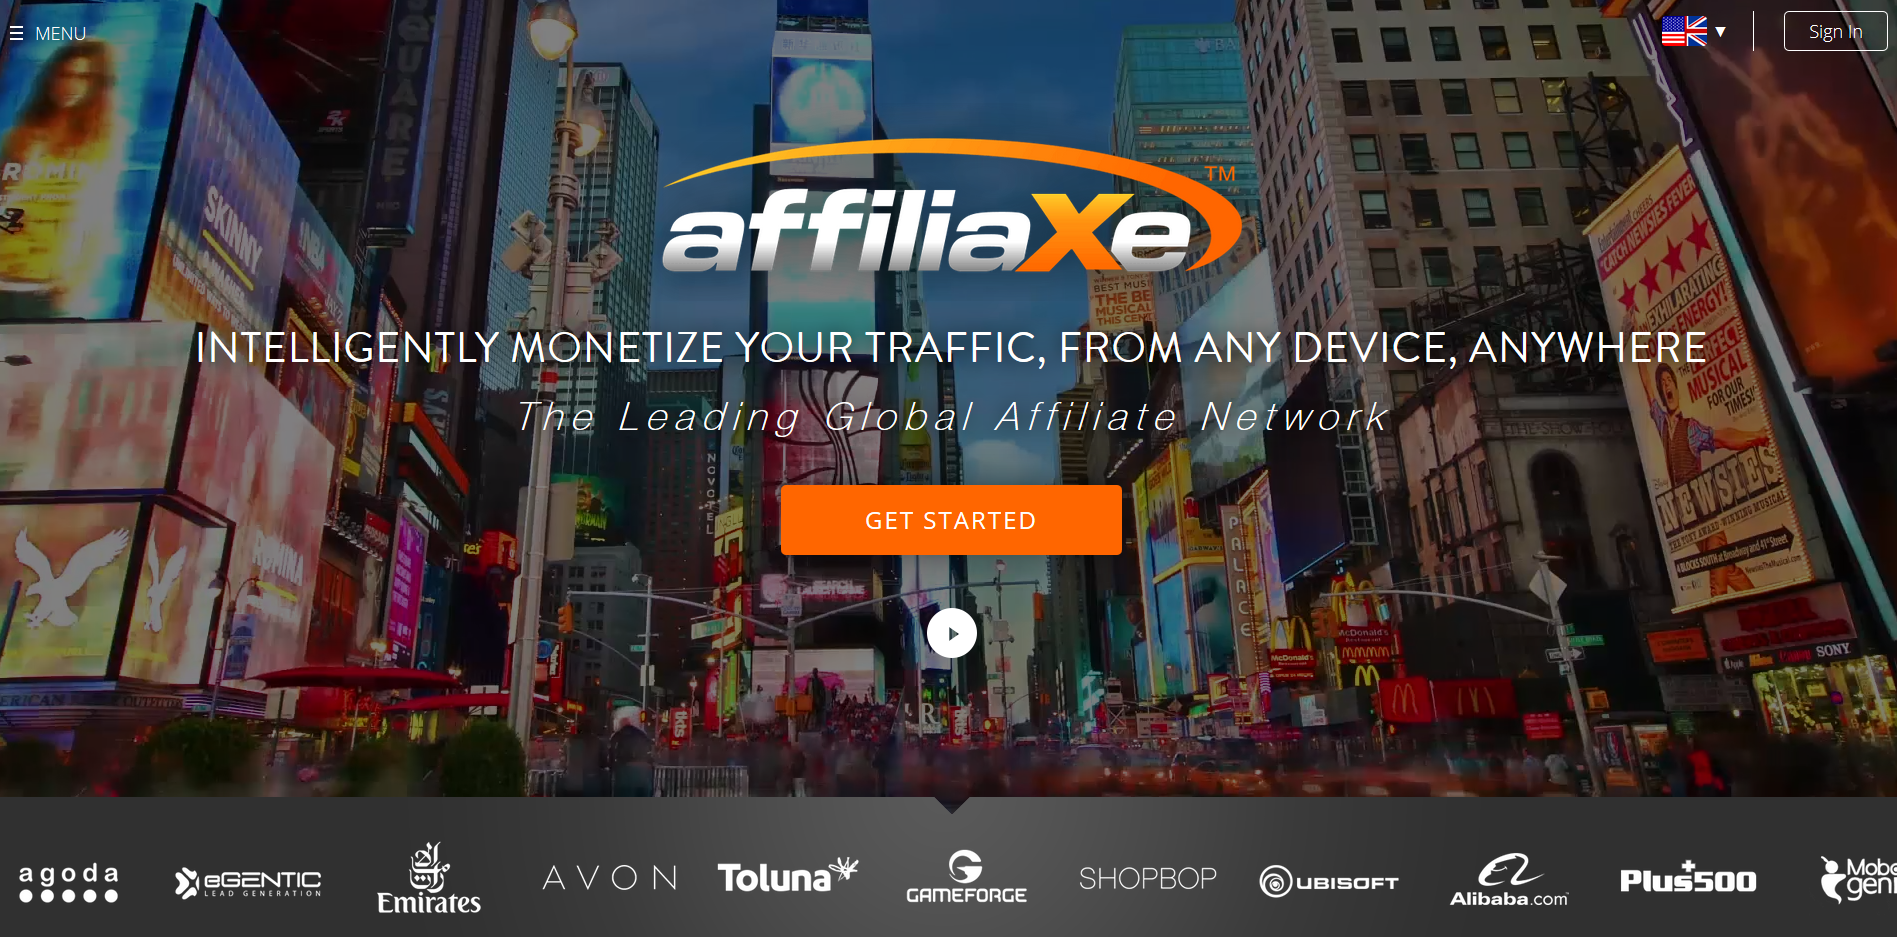 ads by Performance.affiliaxe.com